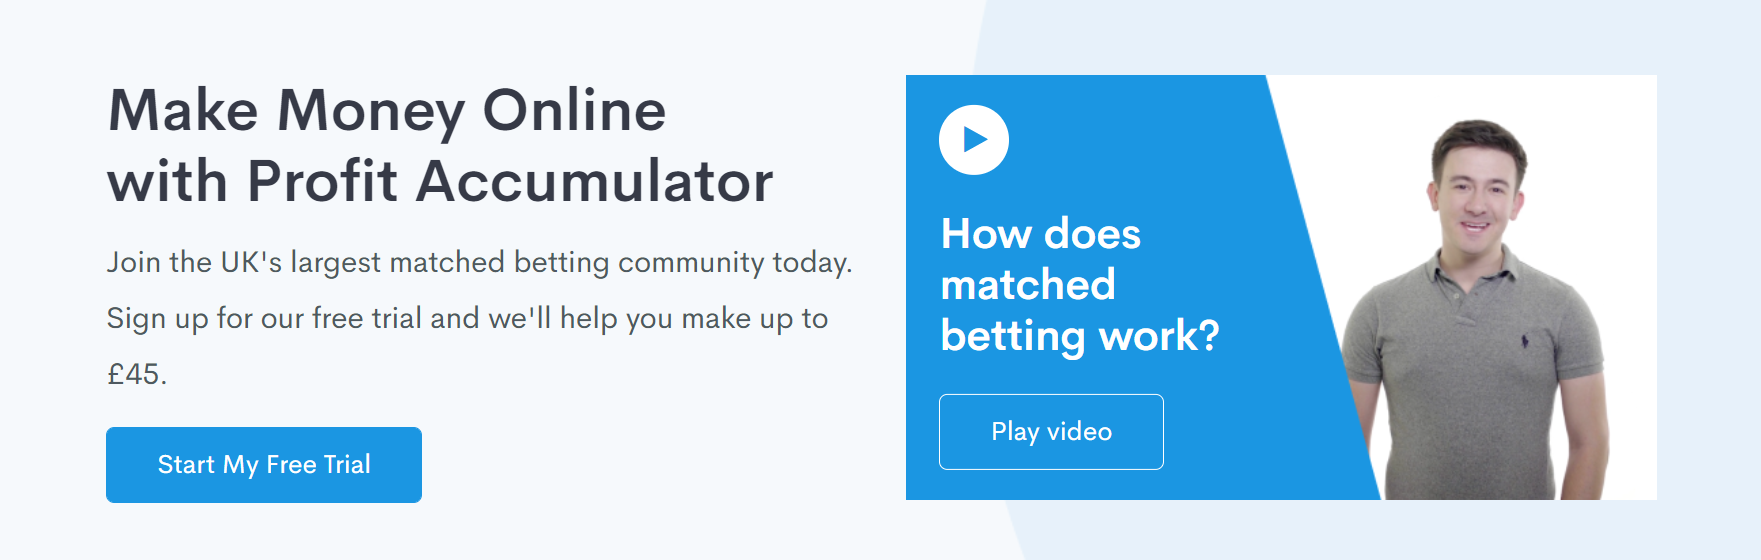 Make Up To £1k Matched Betting With Profit Acumulator